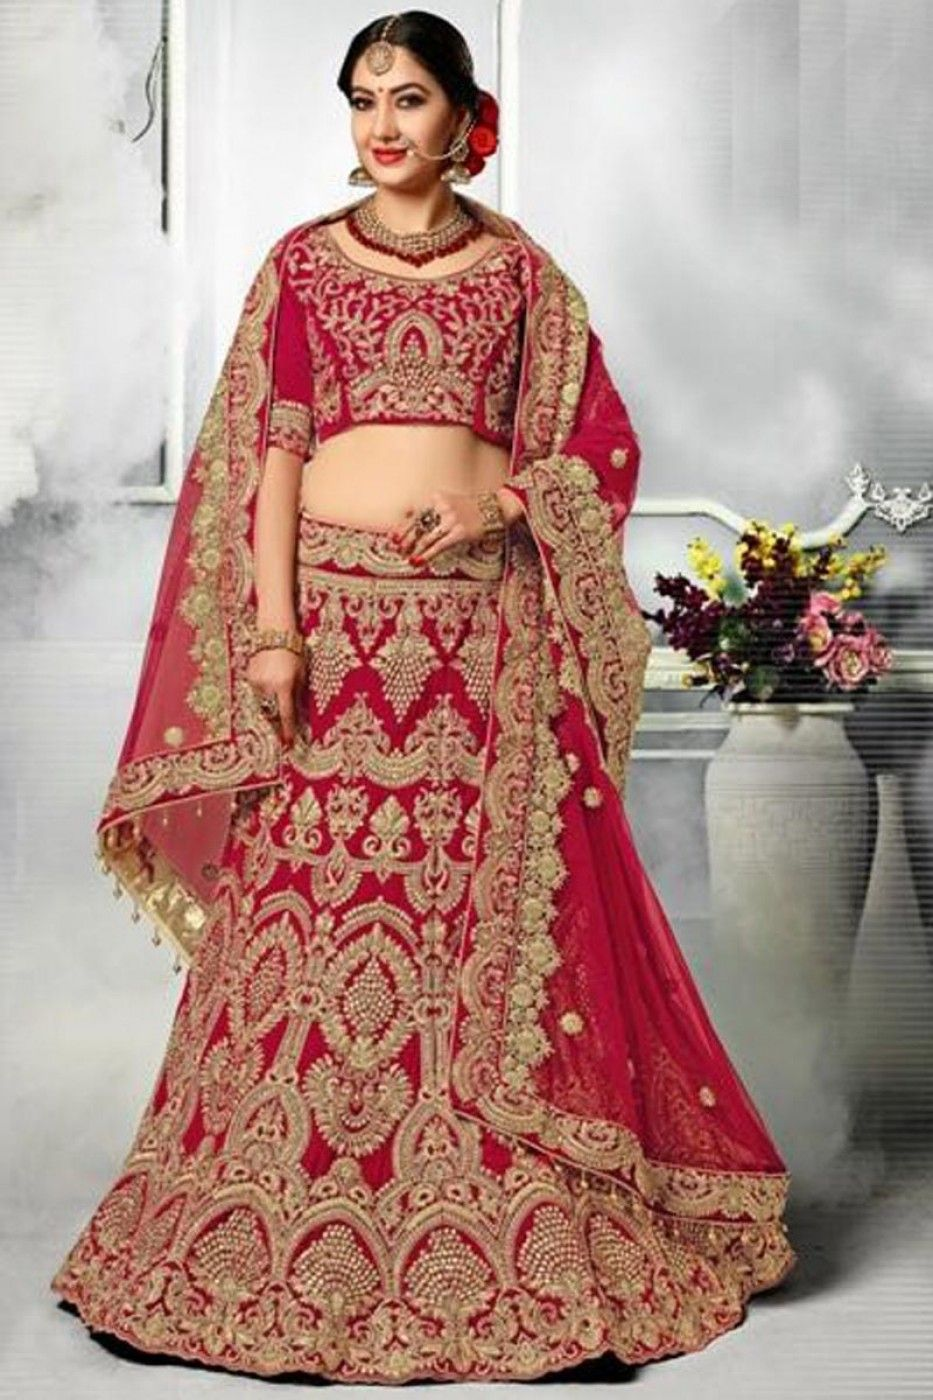 Embroidered Red Velvet Sangeet Wear Lehenga With Embroidery Work And Beautiful Blouse Bridal Lehnga Red Indian Bridal Lehenga Lehenga Choli